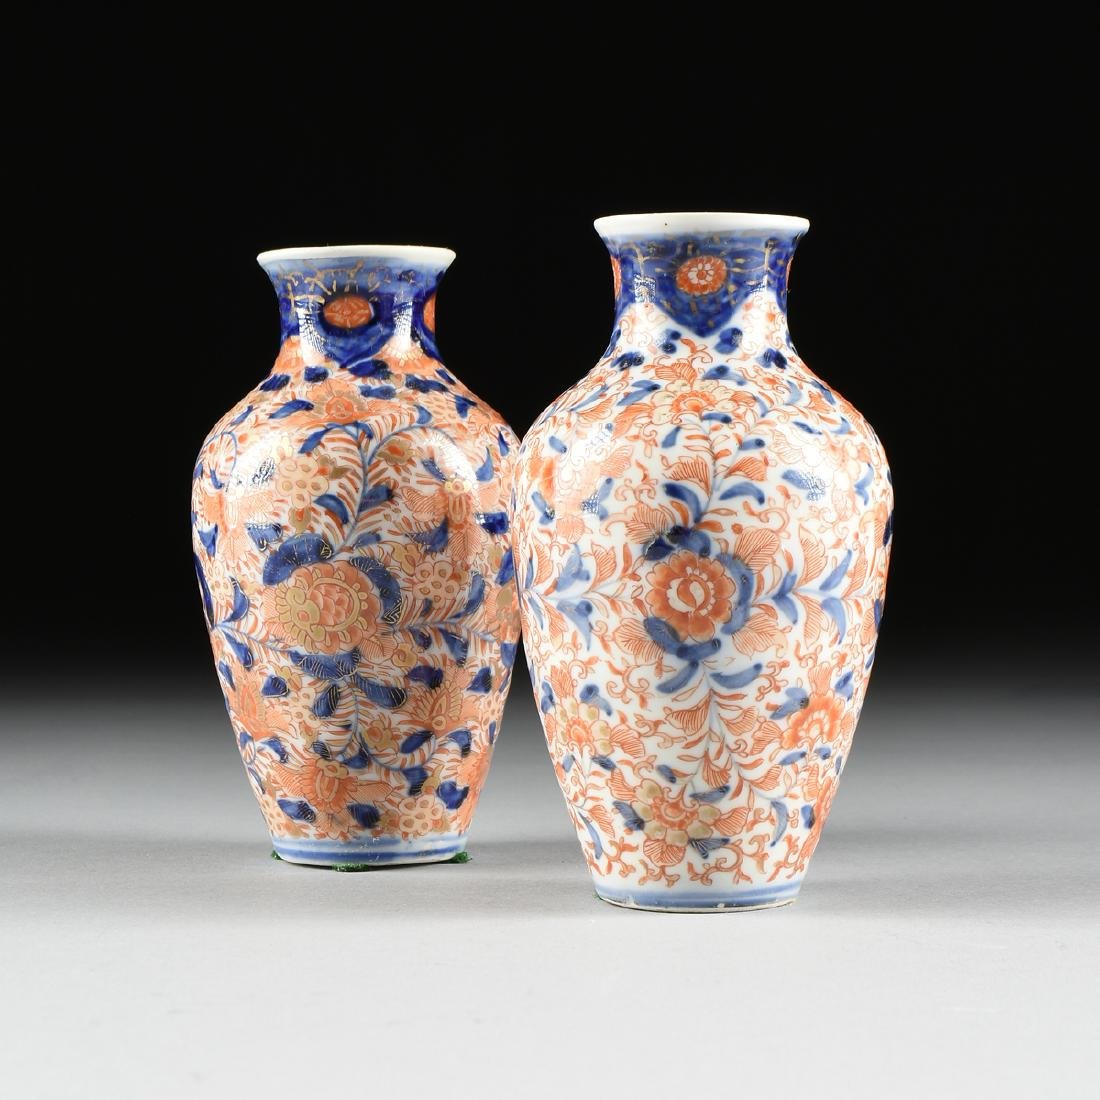 A NEAR PAIR OF IMARI EXPORT PARCEL GILT ENAMELED